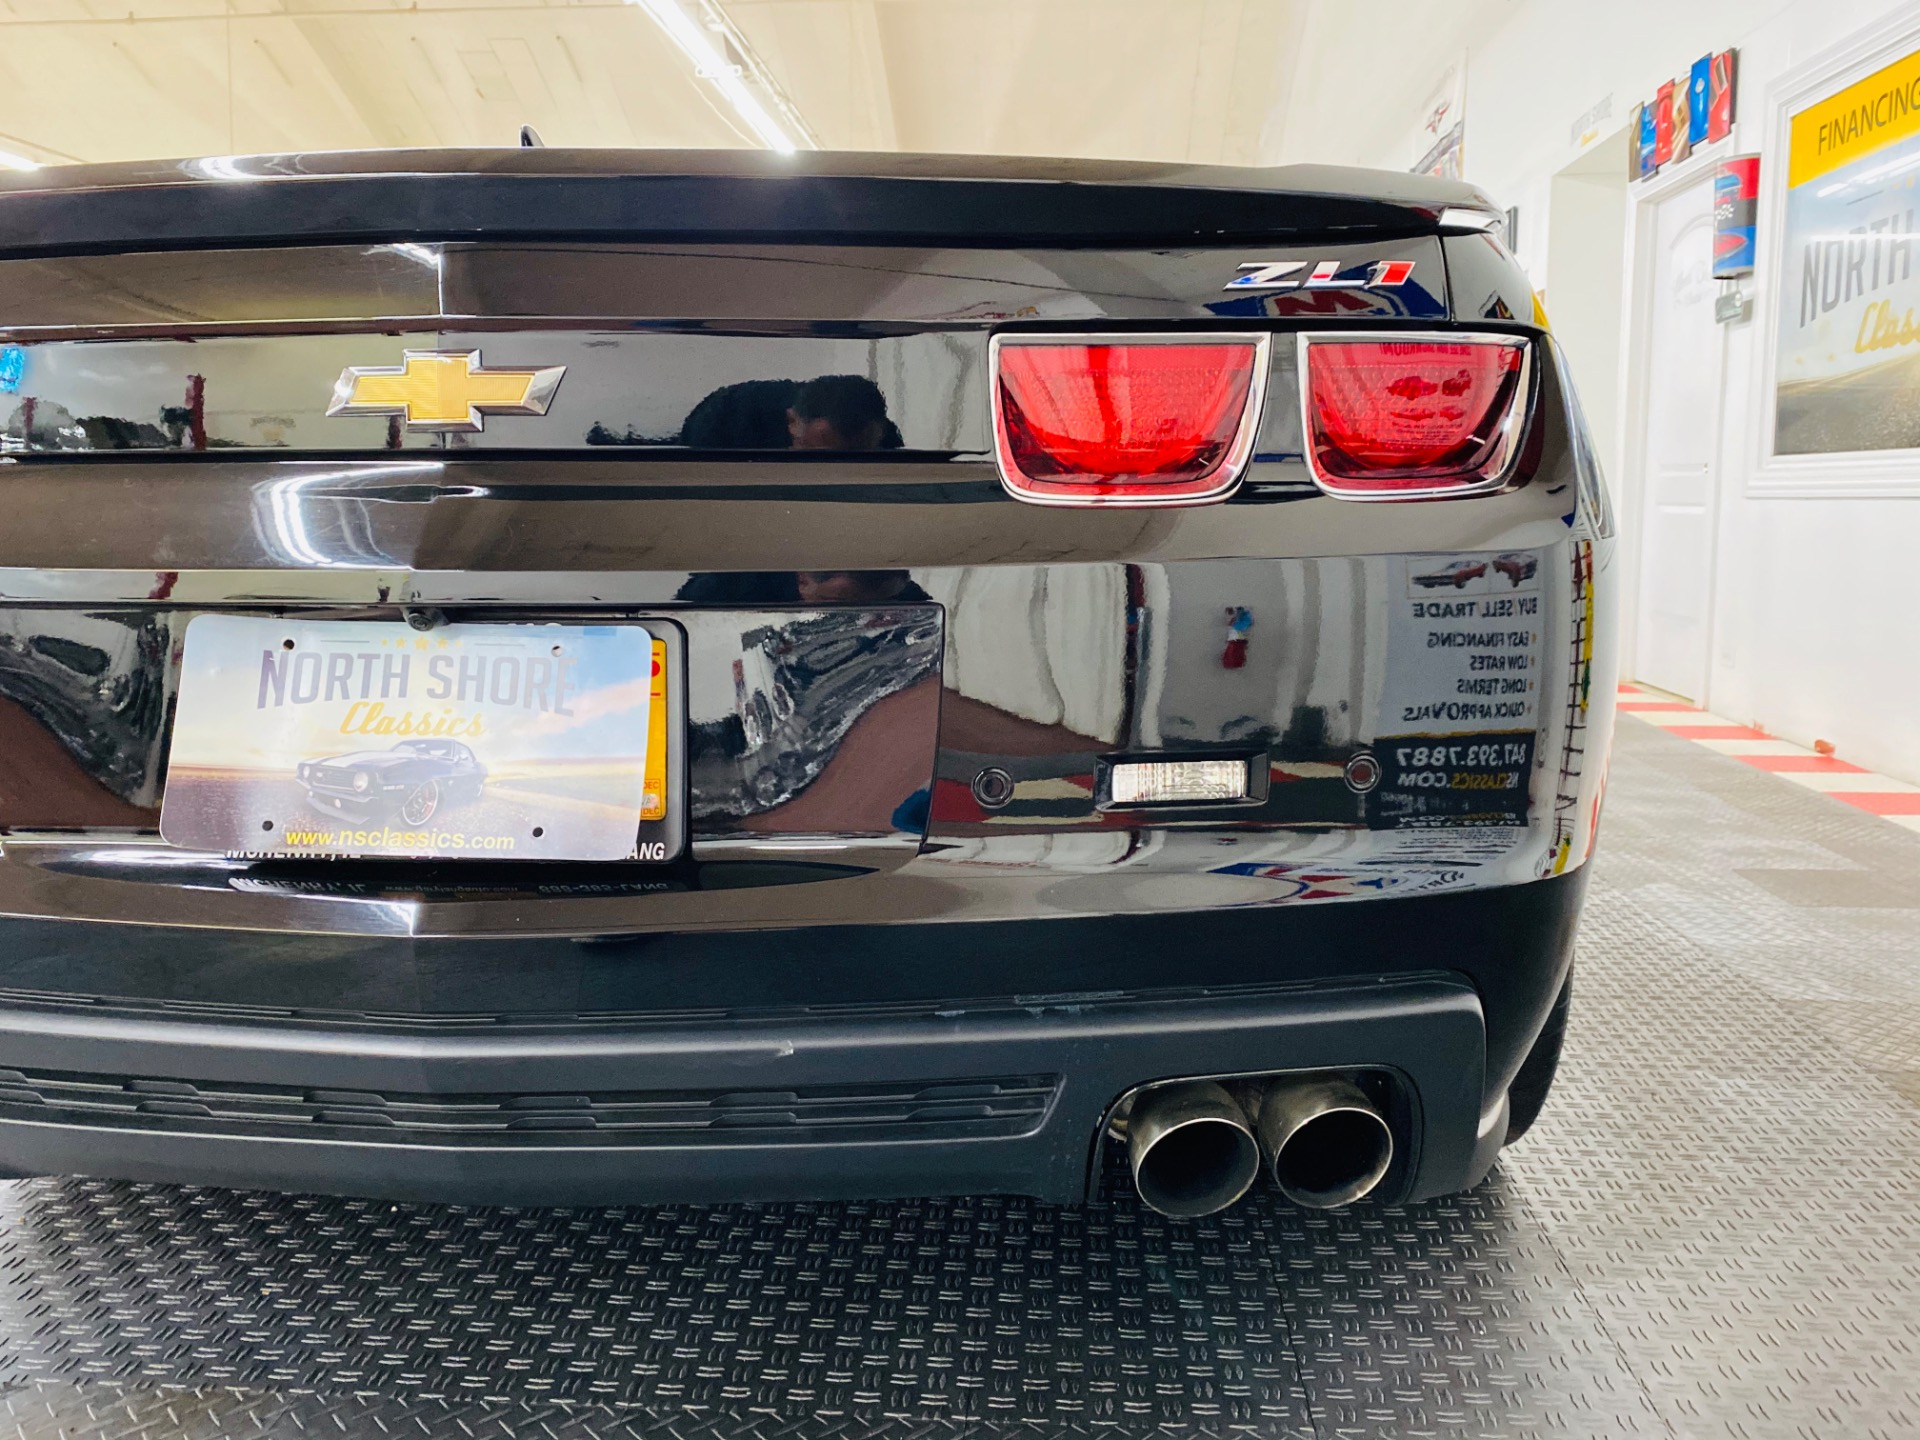 Used 2013 Chevrolet Camaro - ZL1 CONVERTIBLE - TRIPLE BLACK - SUPER CLEAN - LOW MILES - SEE VIDEO | Mundelein, IL